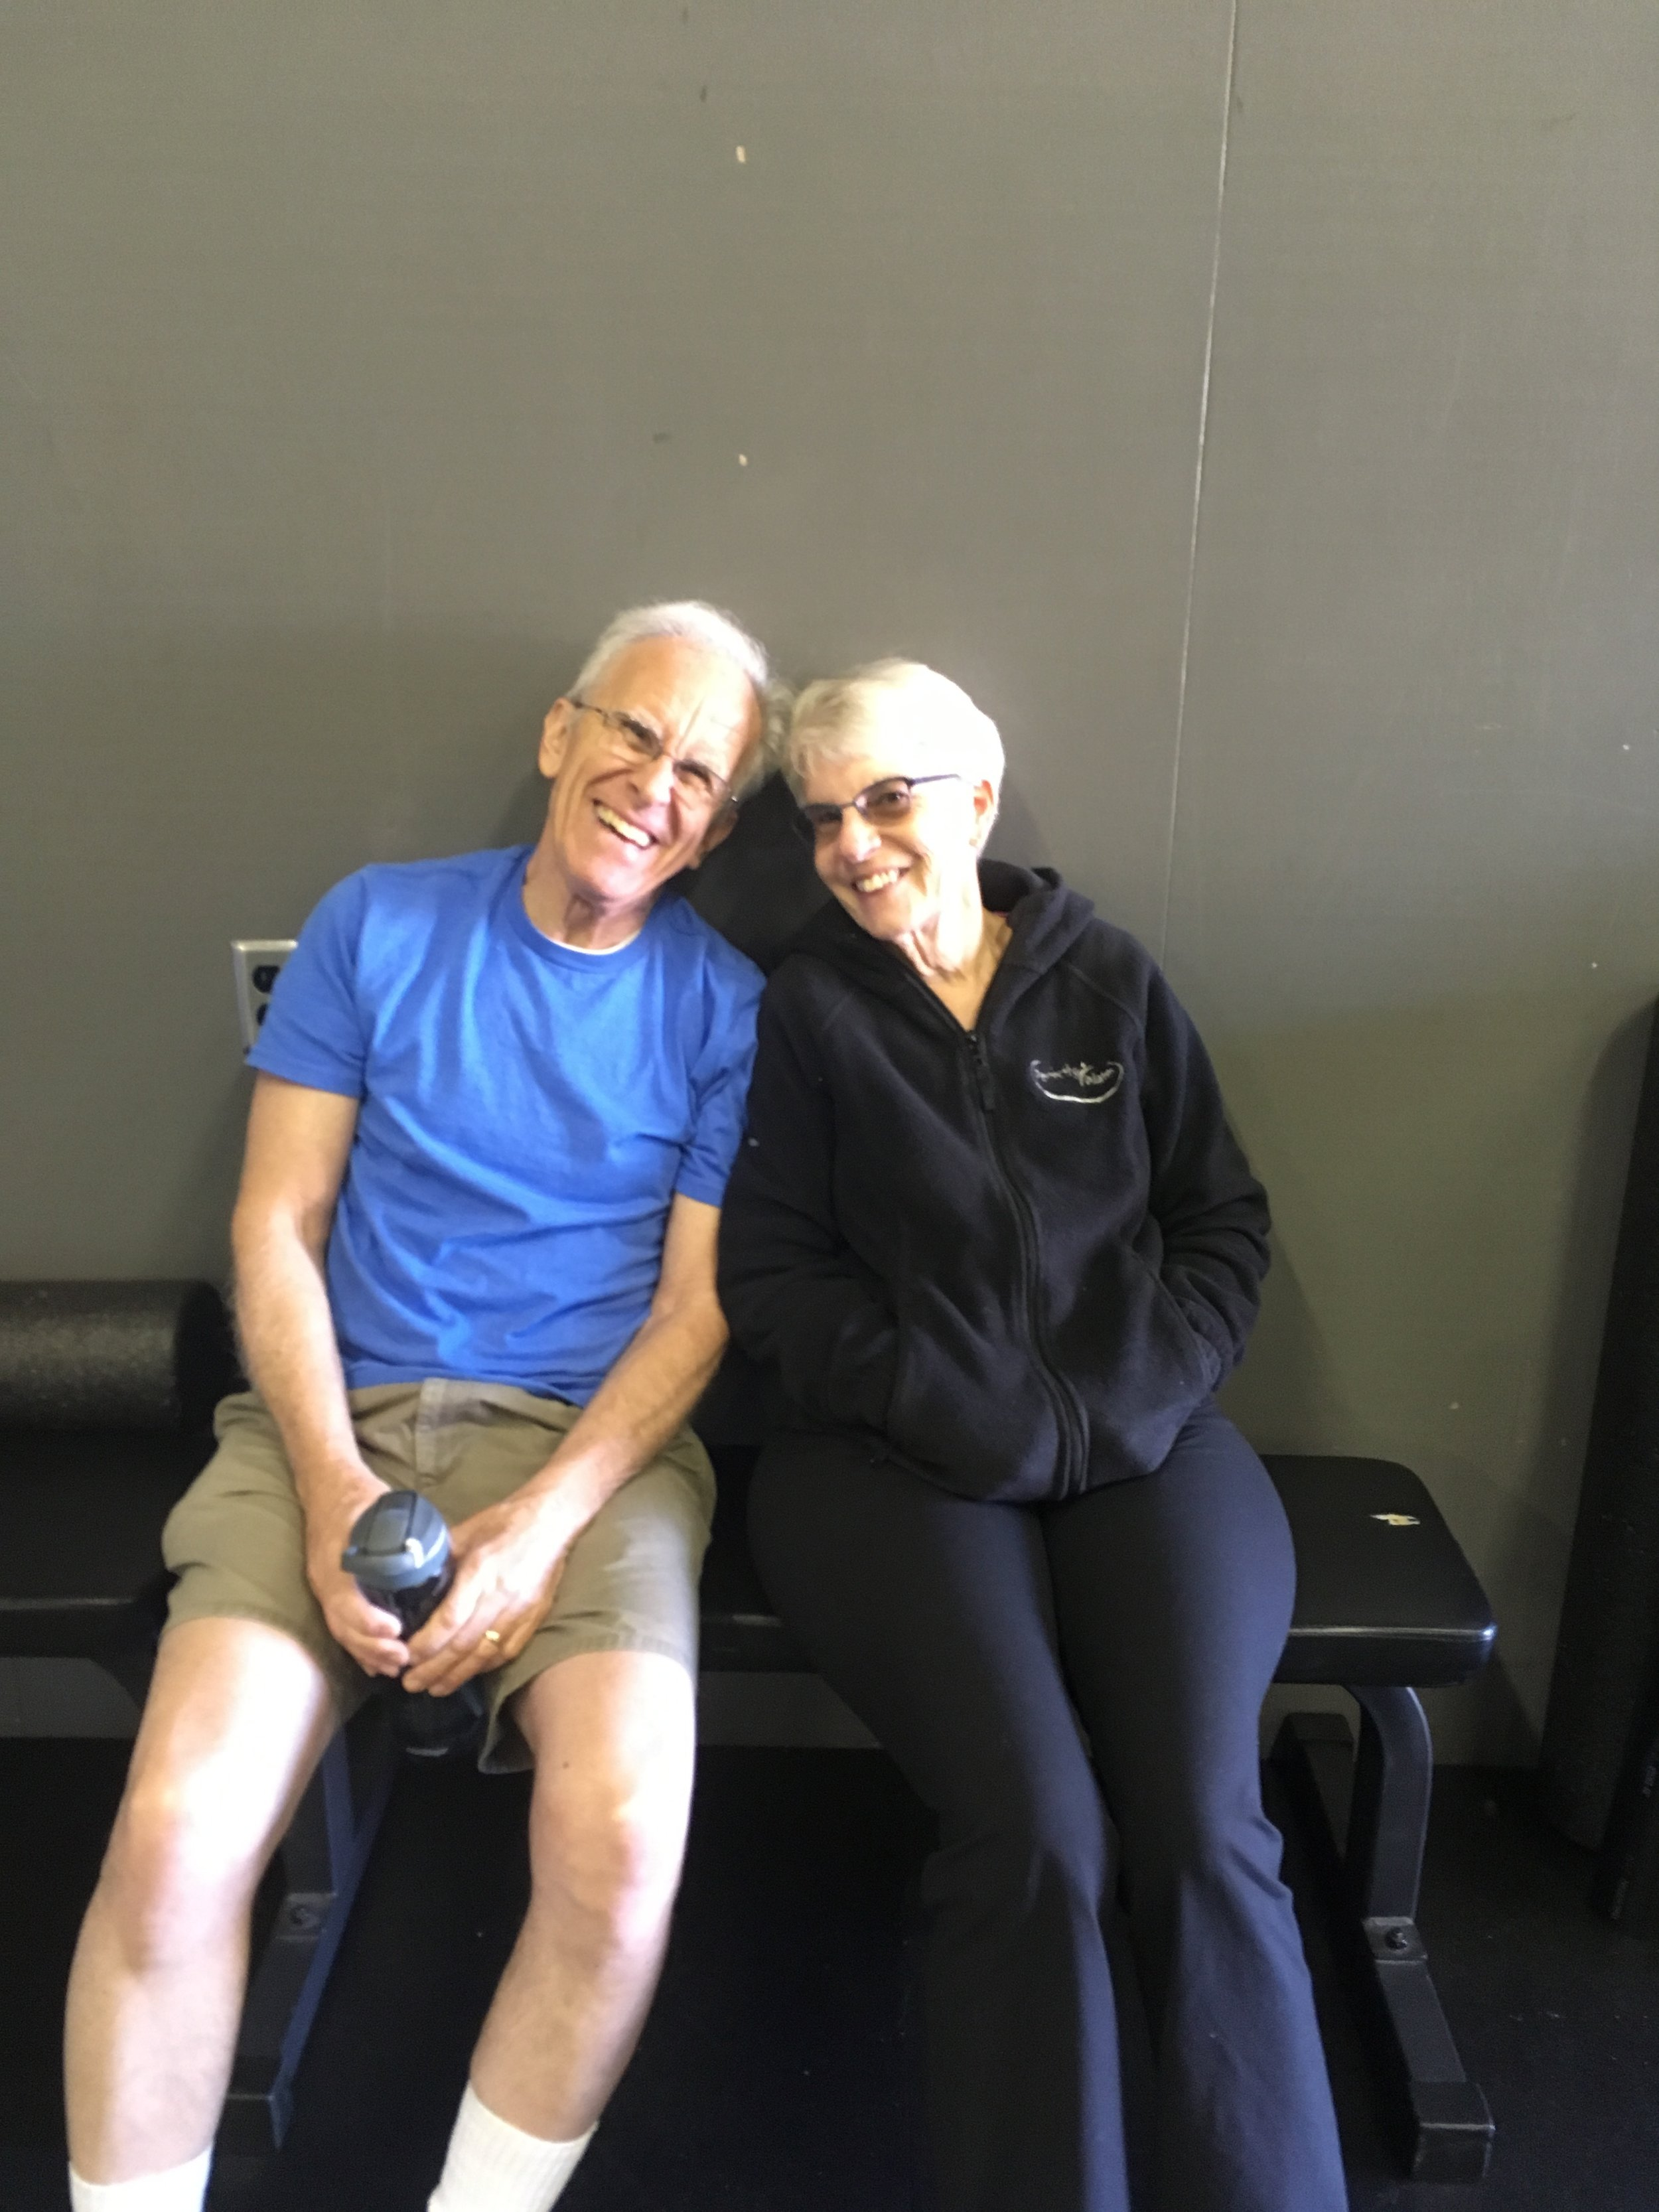 Bart and Karen (Married 51 years) always challenge themselves and have such a great attitude as well.